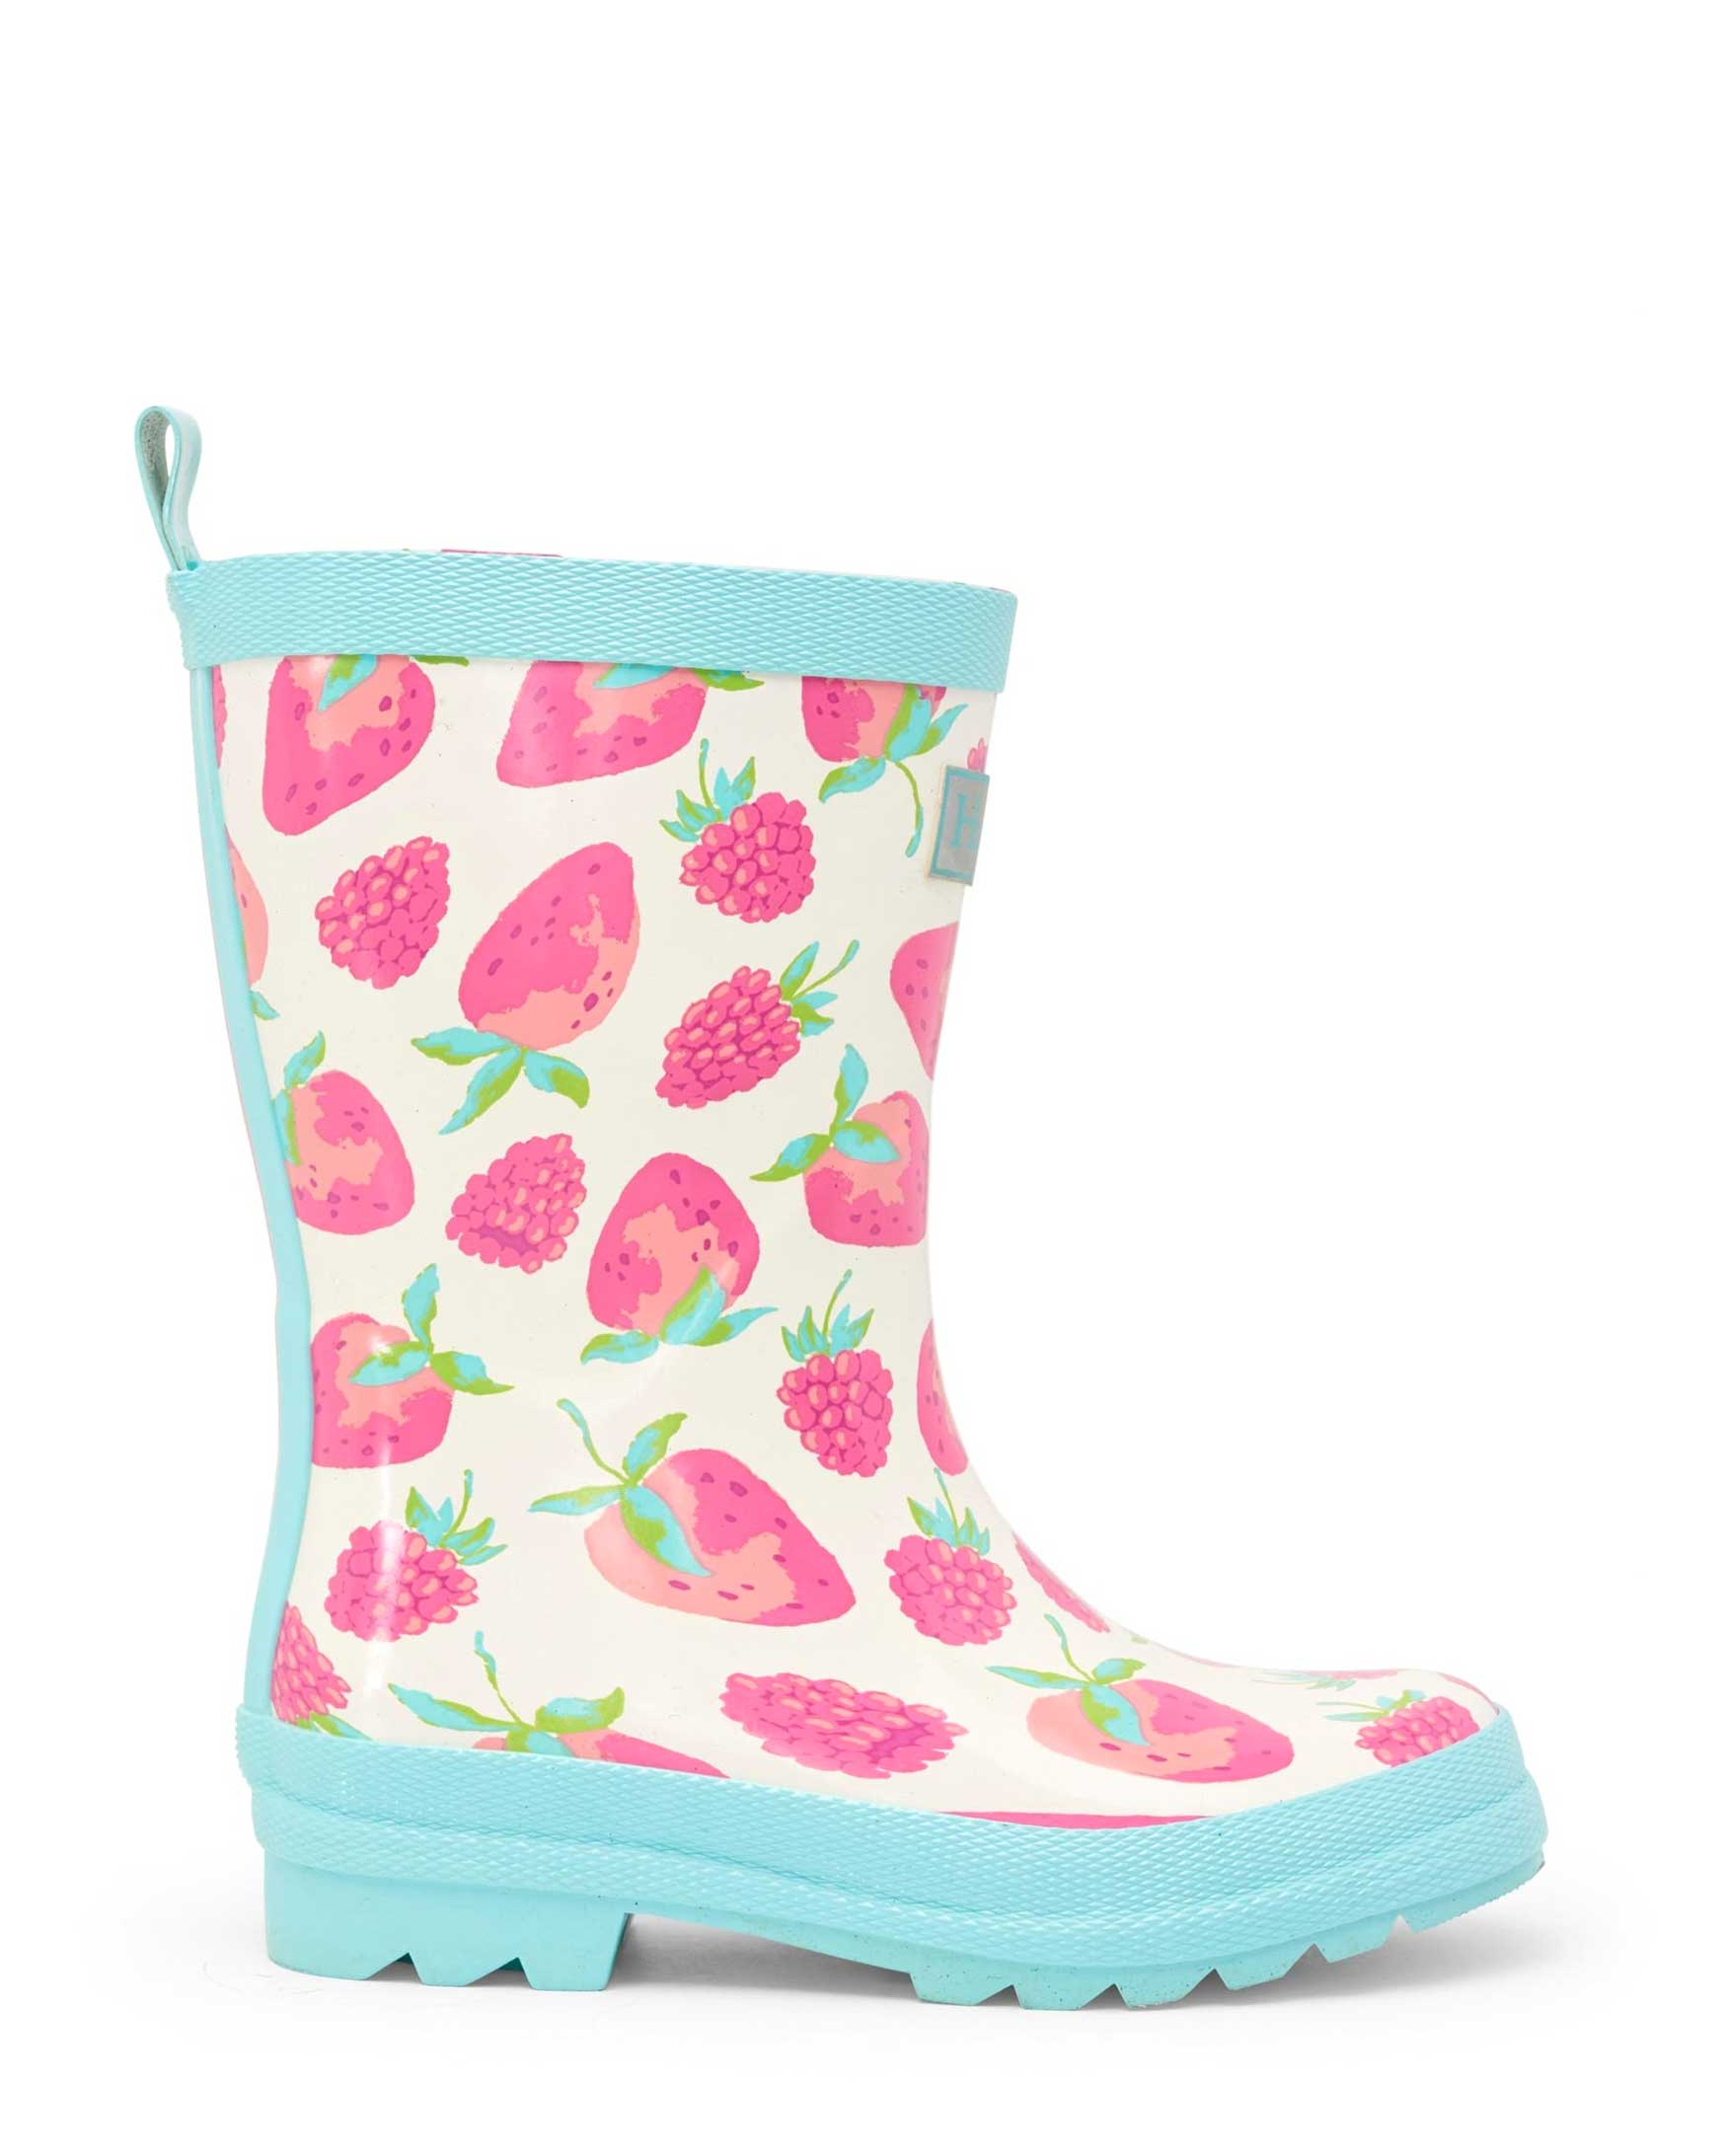 Delicious Berries Shiny Gumboots